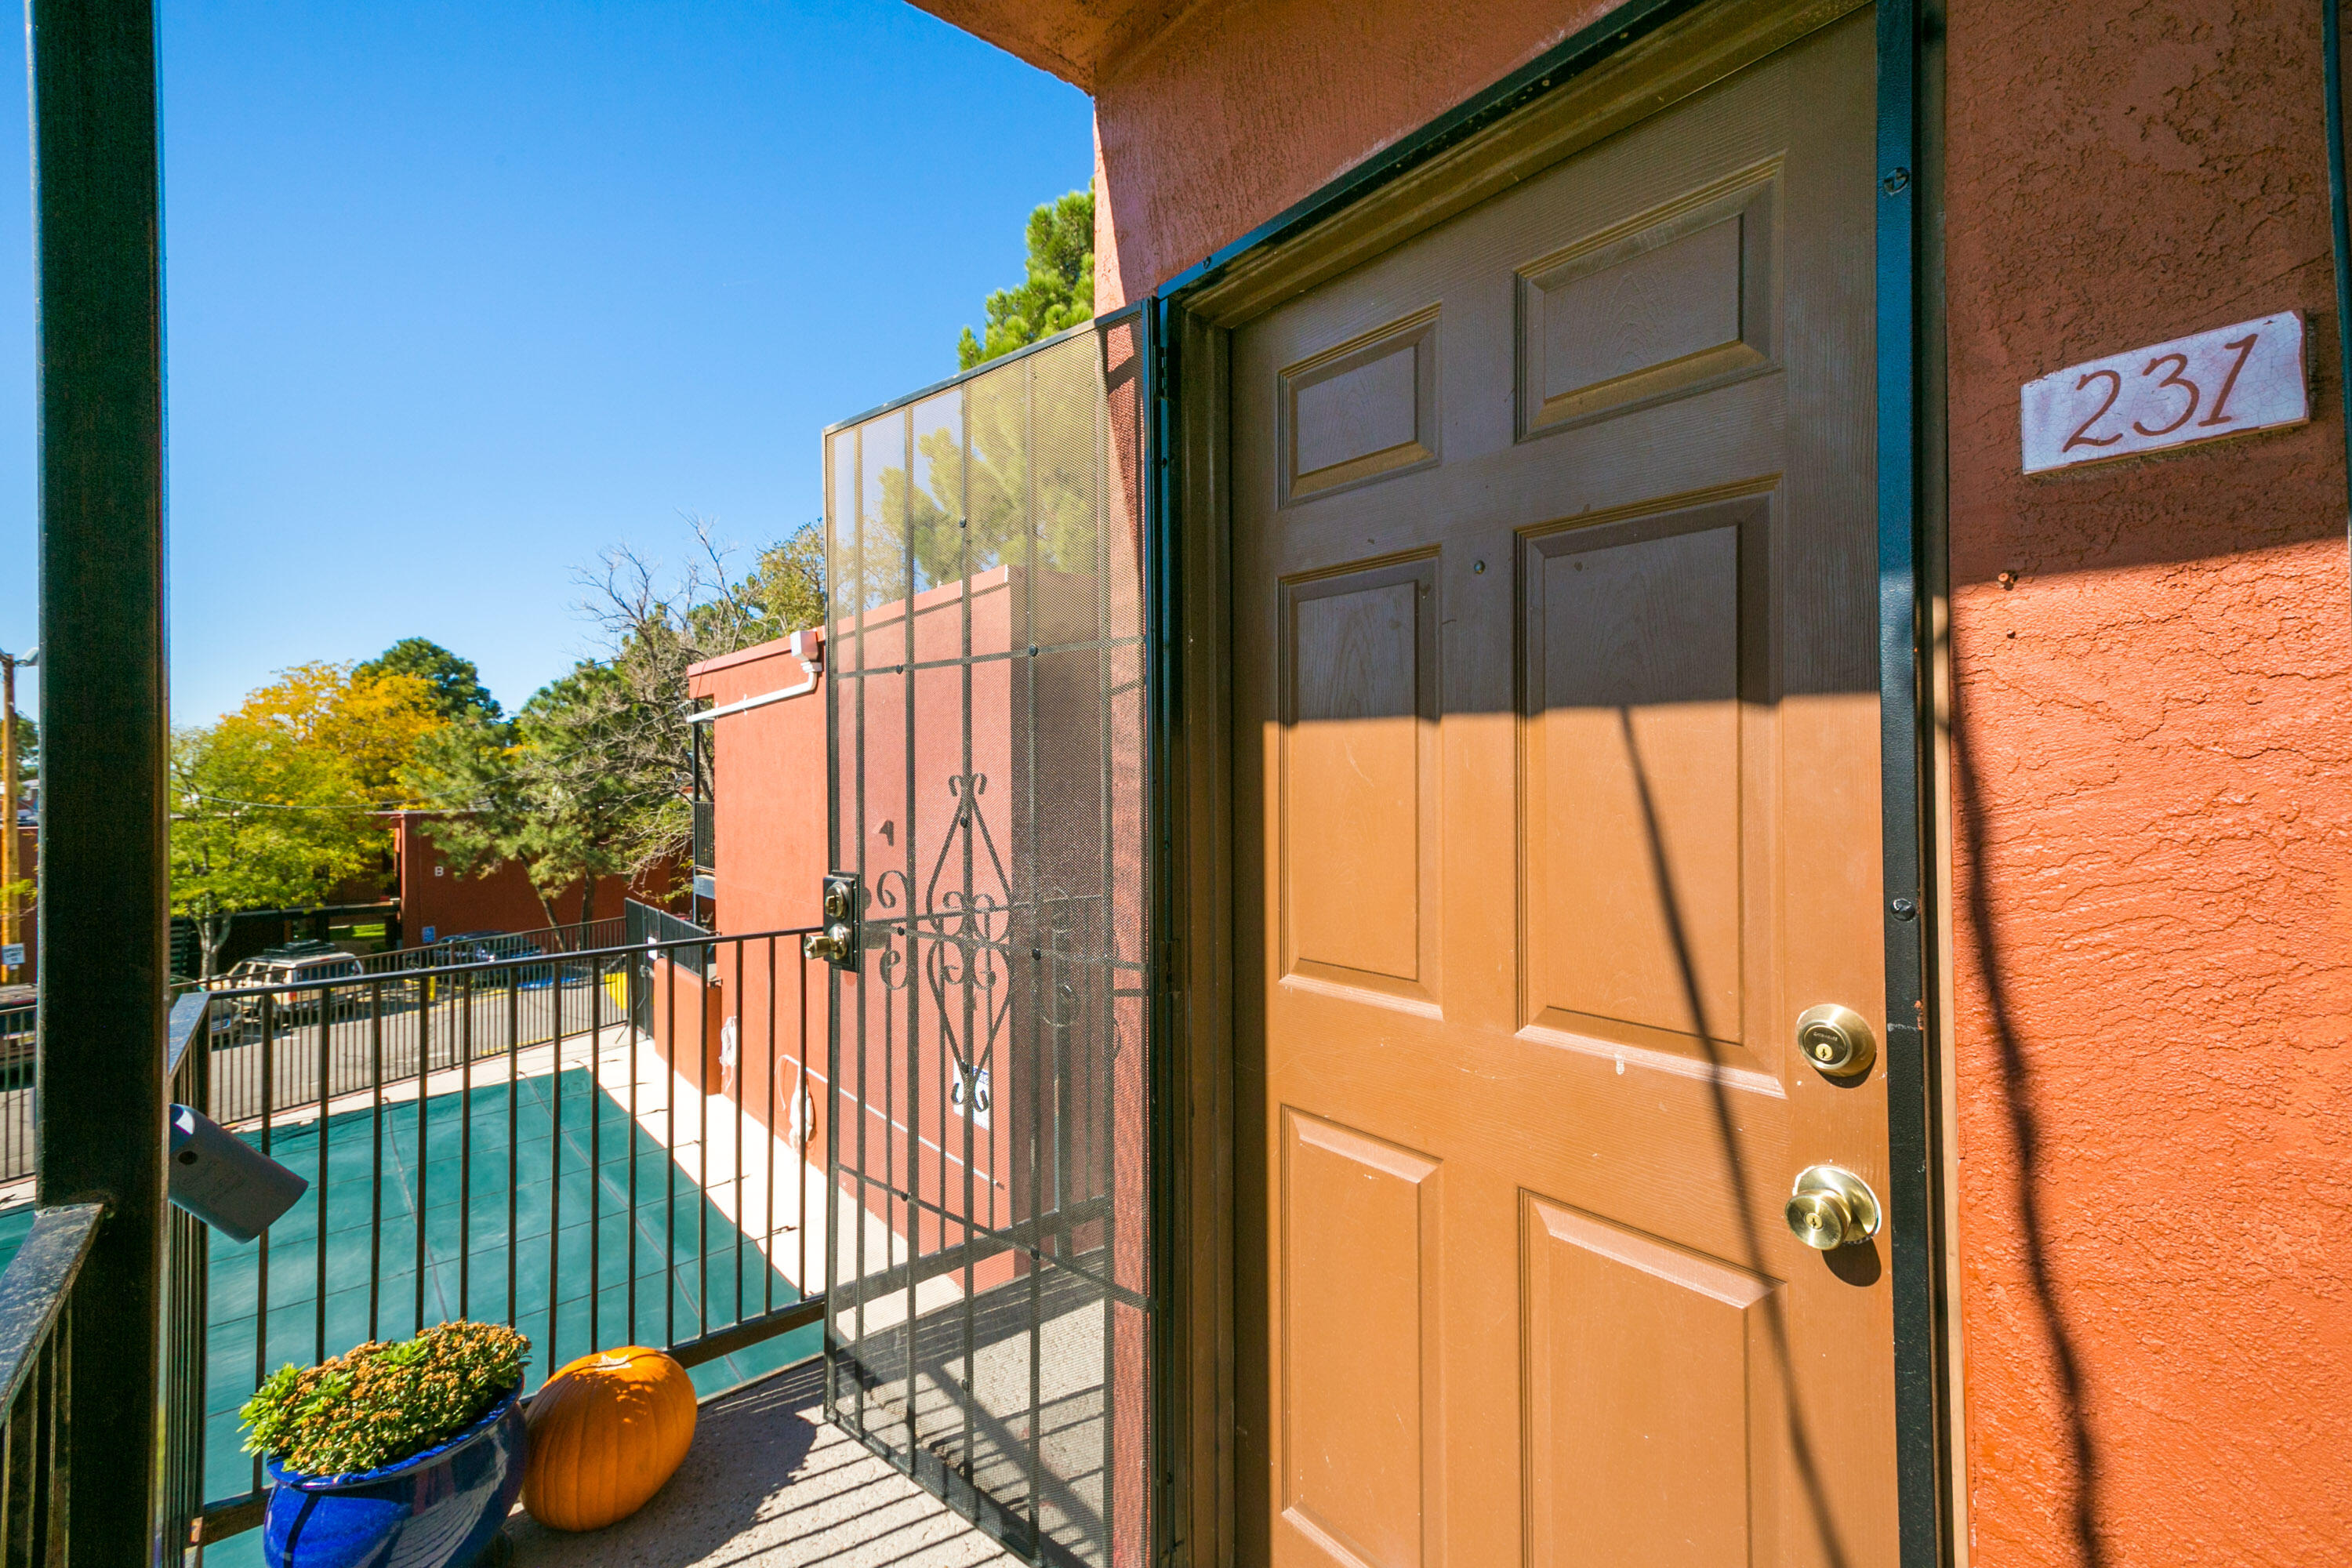 Compact home in a convenient location to public transportation, hospital, golf course. Hoa covers all utilities, exterior building & grounds maintenance. Updates include kitchen, bath, laminate floors. Overlooks the pool. Owner finance available with suitable terms